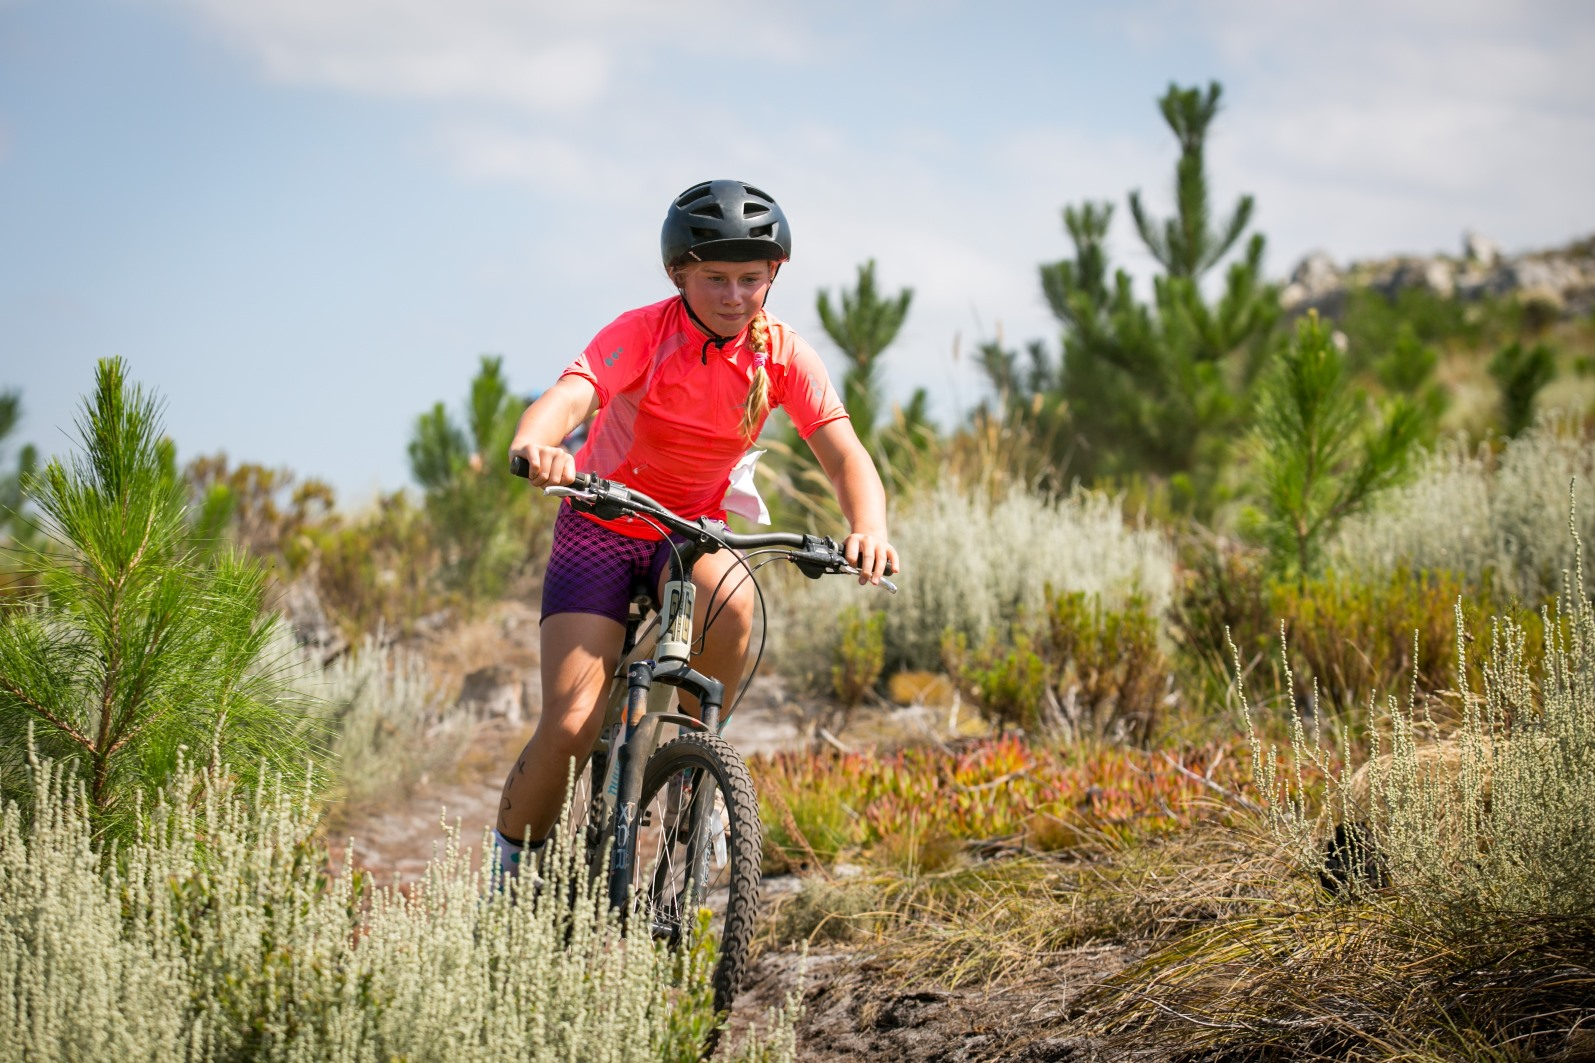 Kids Events added to FNB Magalies Monster MTB Classic and FNB Platinum Trail Run experience